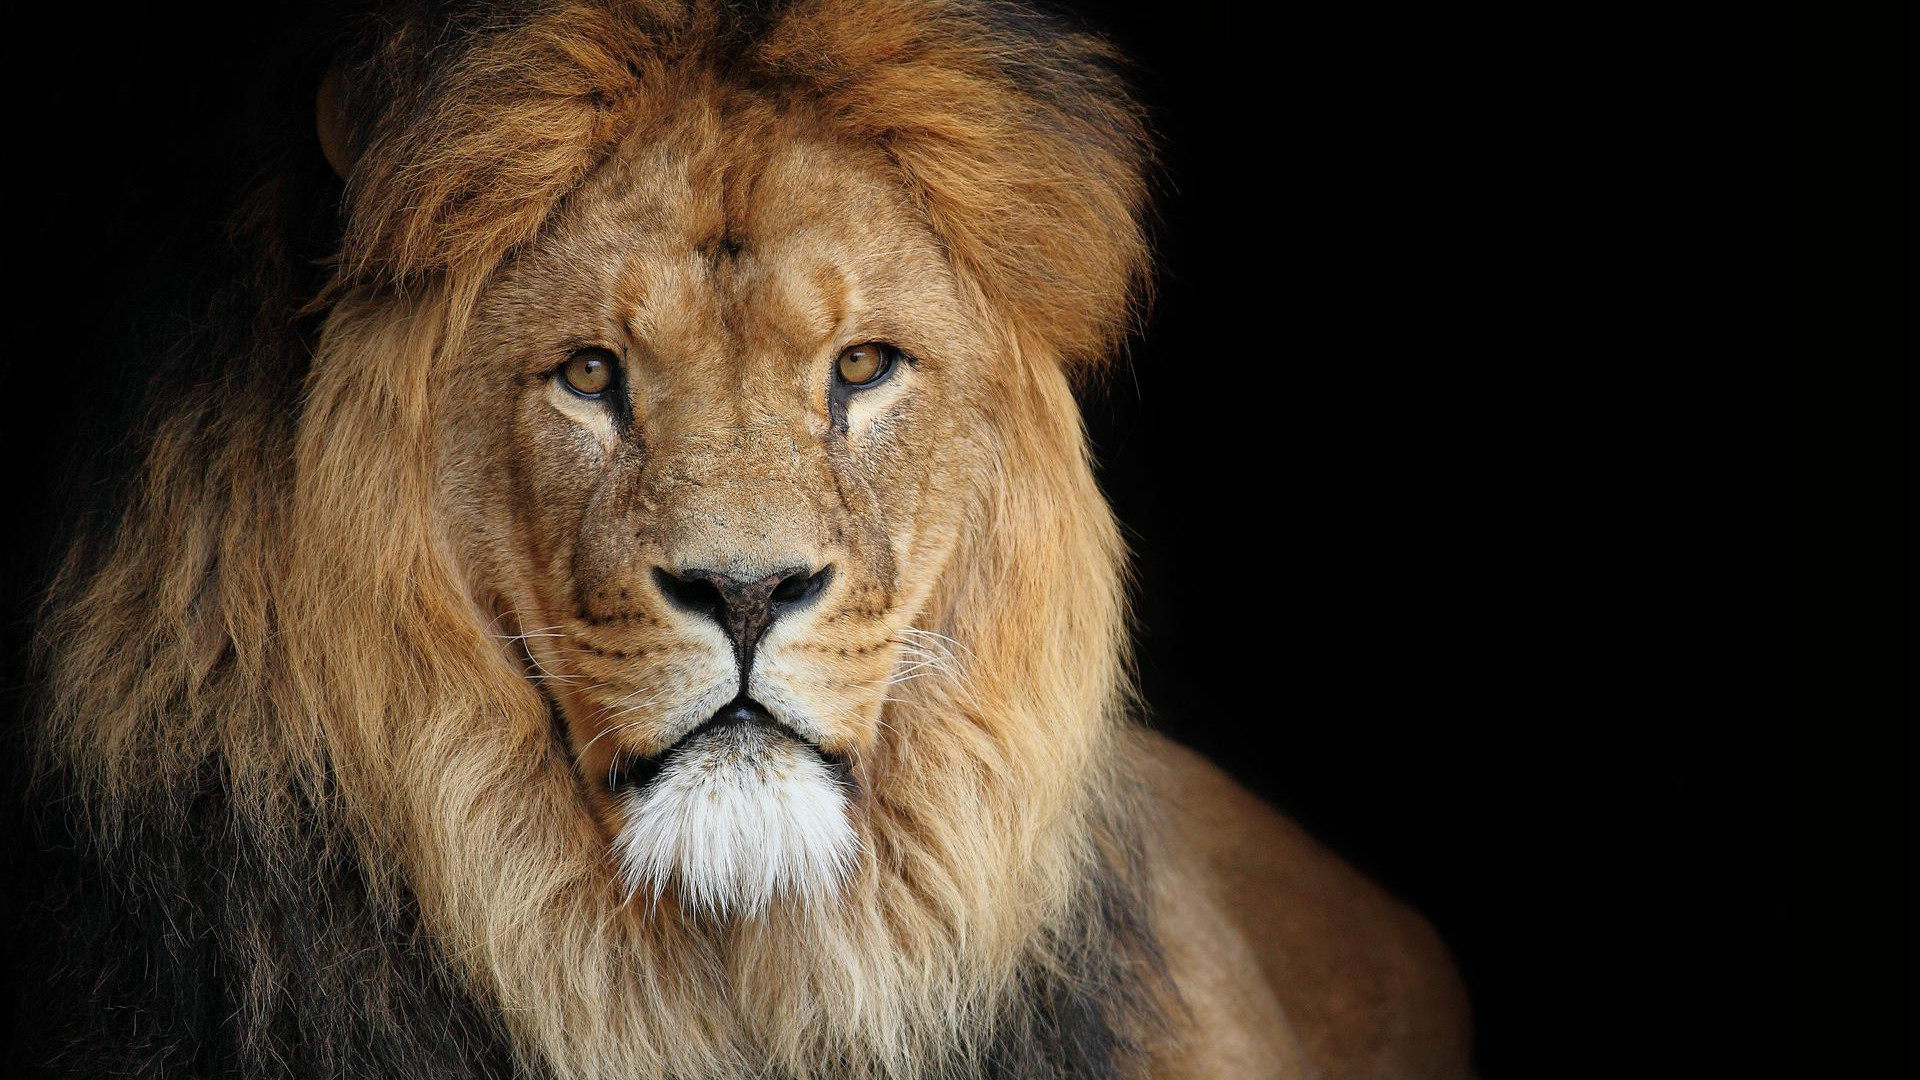 Lion Hd Wallpapers: Lion HD Wallpapers 1080p